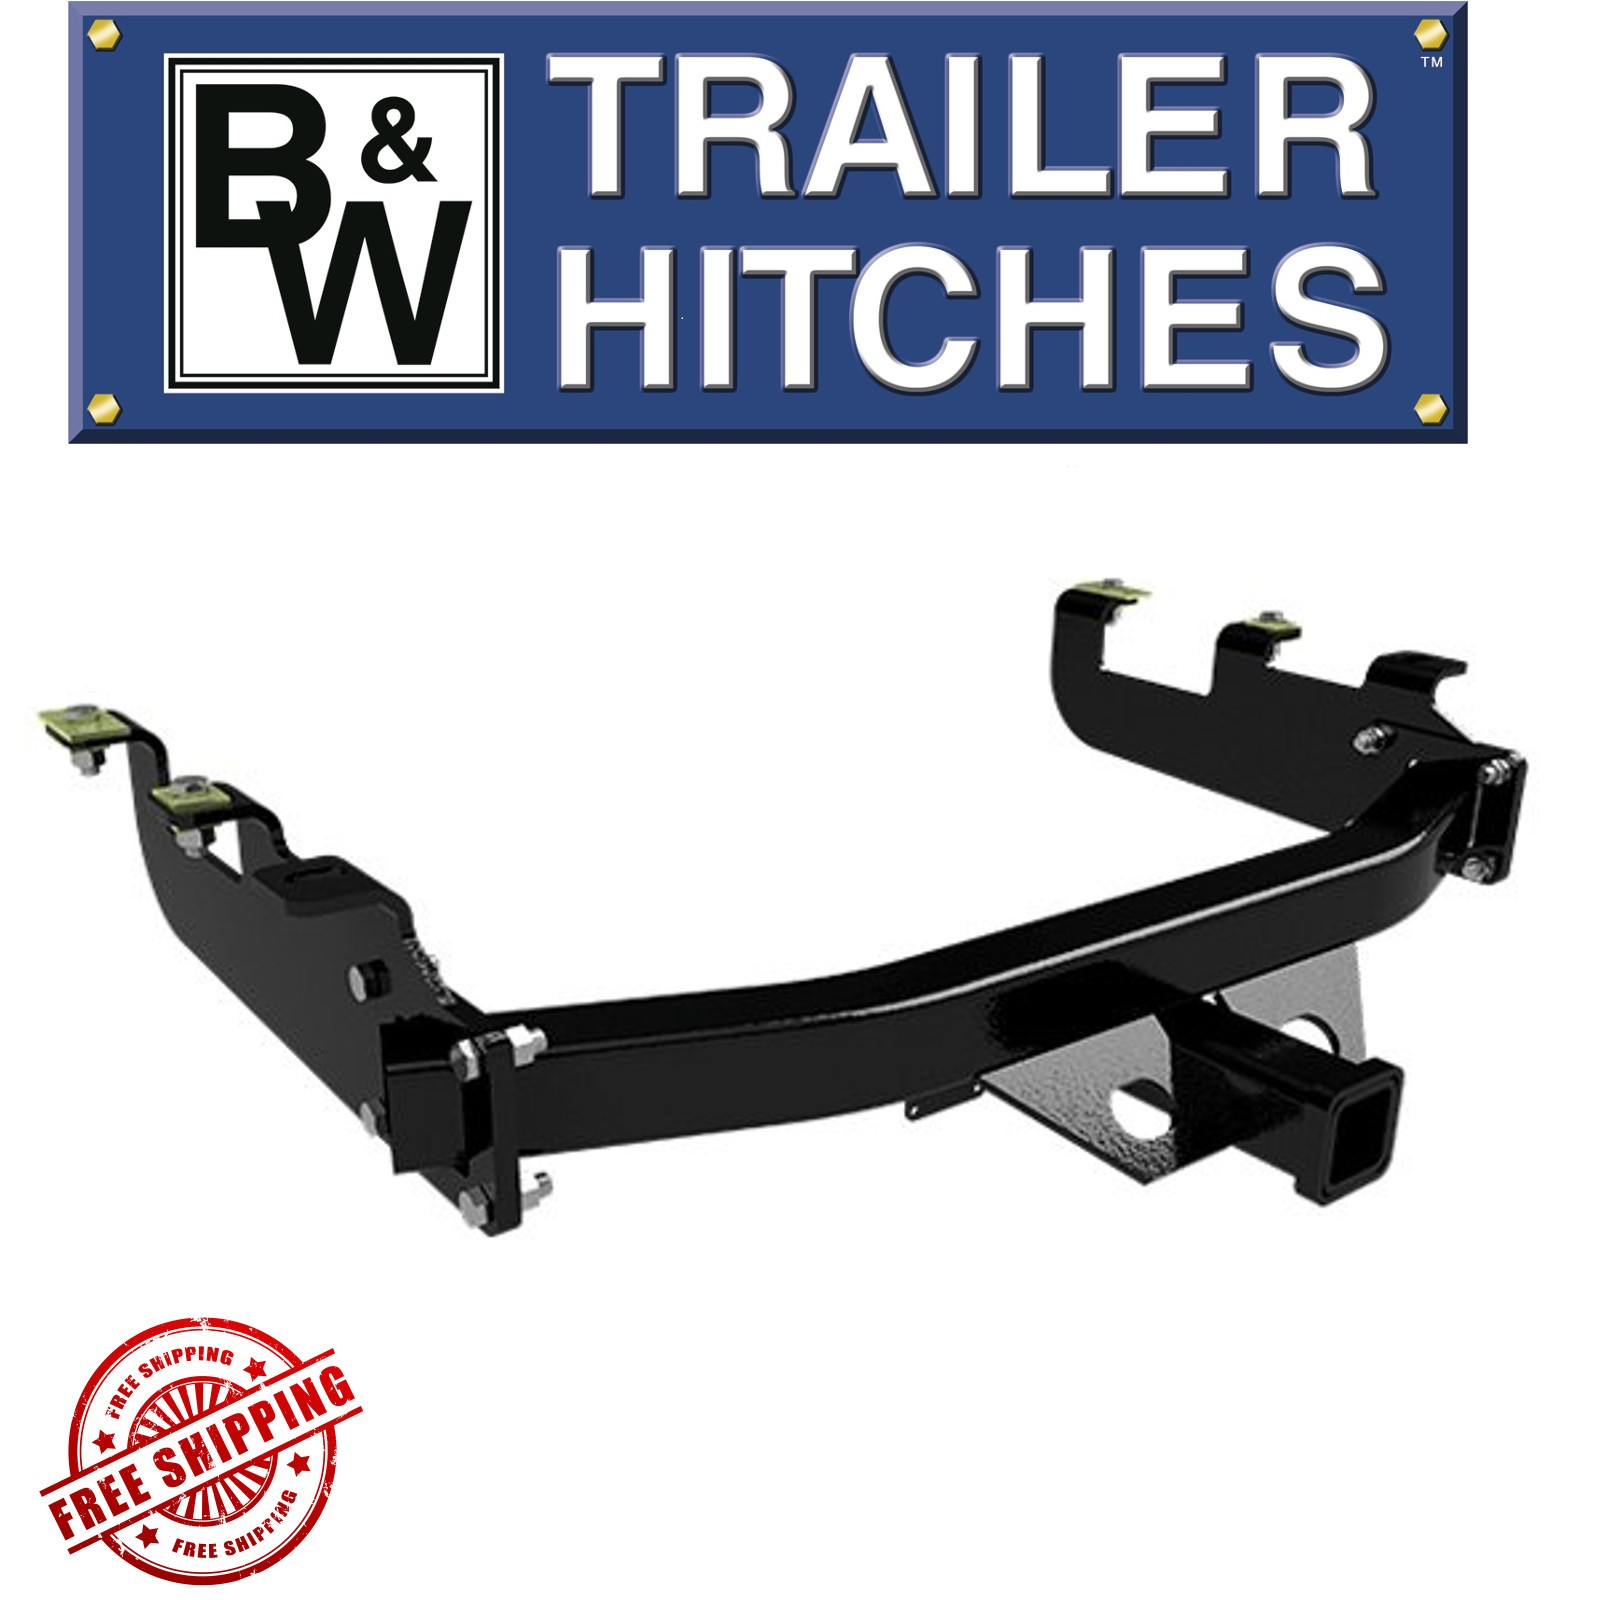 BW Heavy Duty Reciever Hitch 16000 GTW Fits 1999-2010 Ford HD Pickup Truck